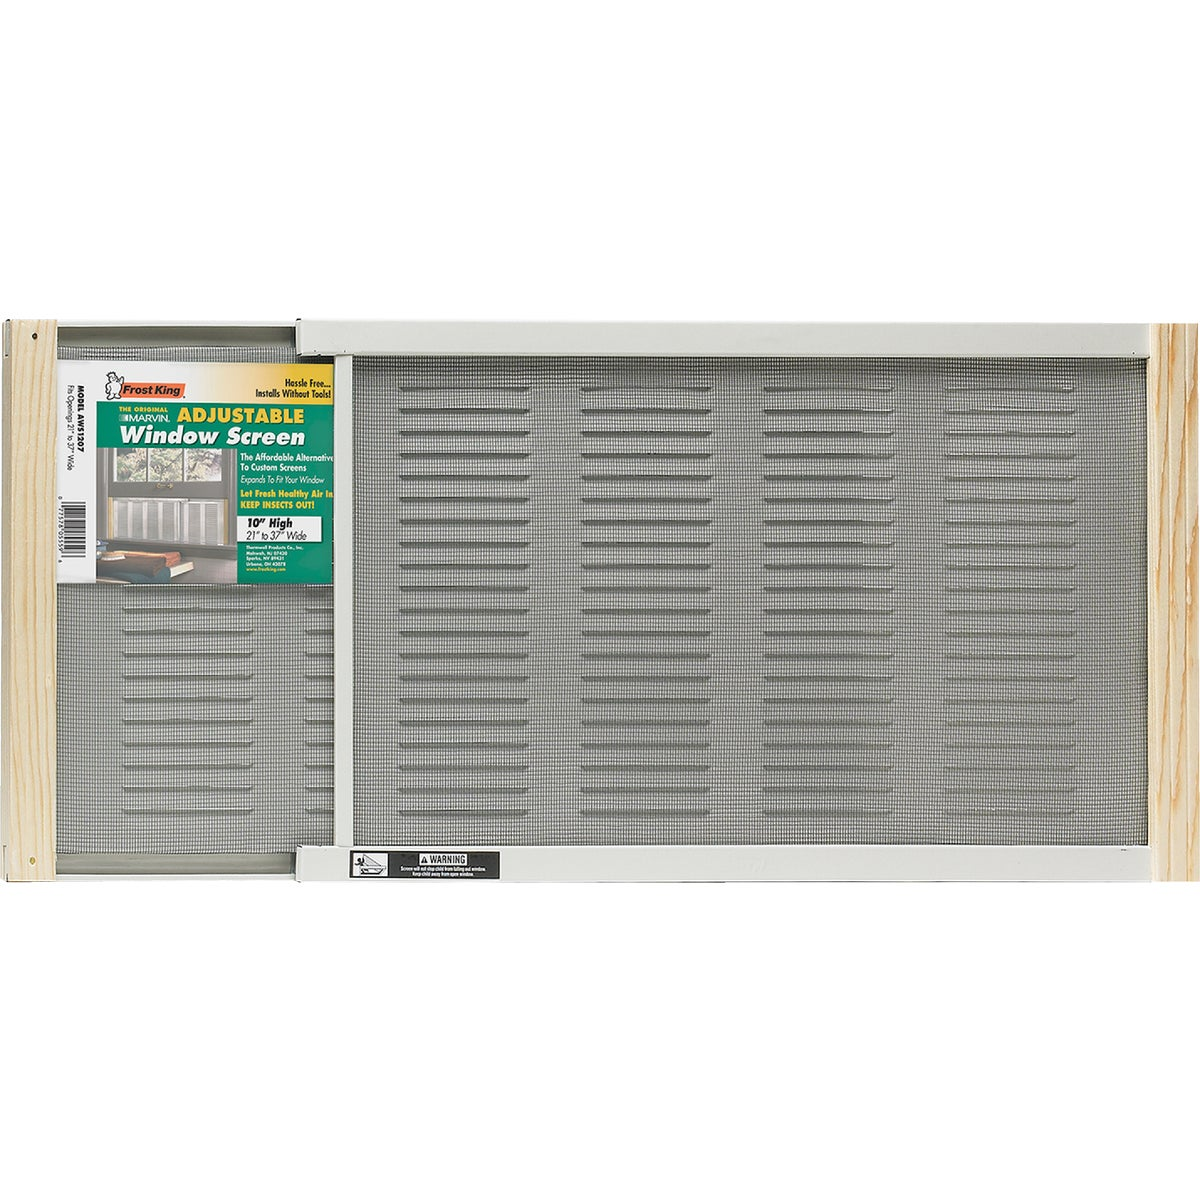 WNDW SCREEN W/VENTILATOR - AWS1207 by Thermwell Prods Co